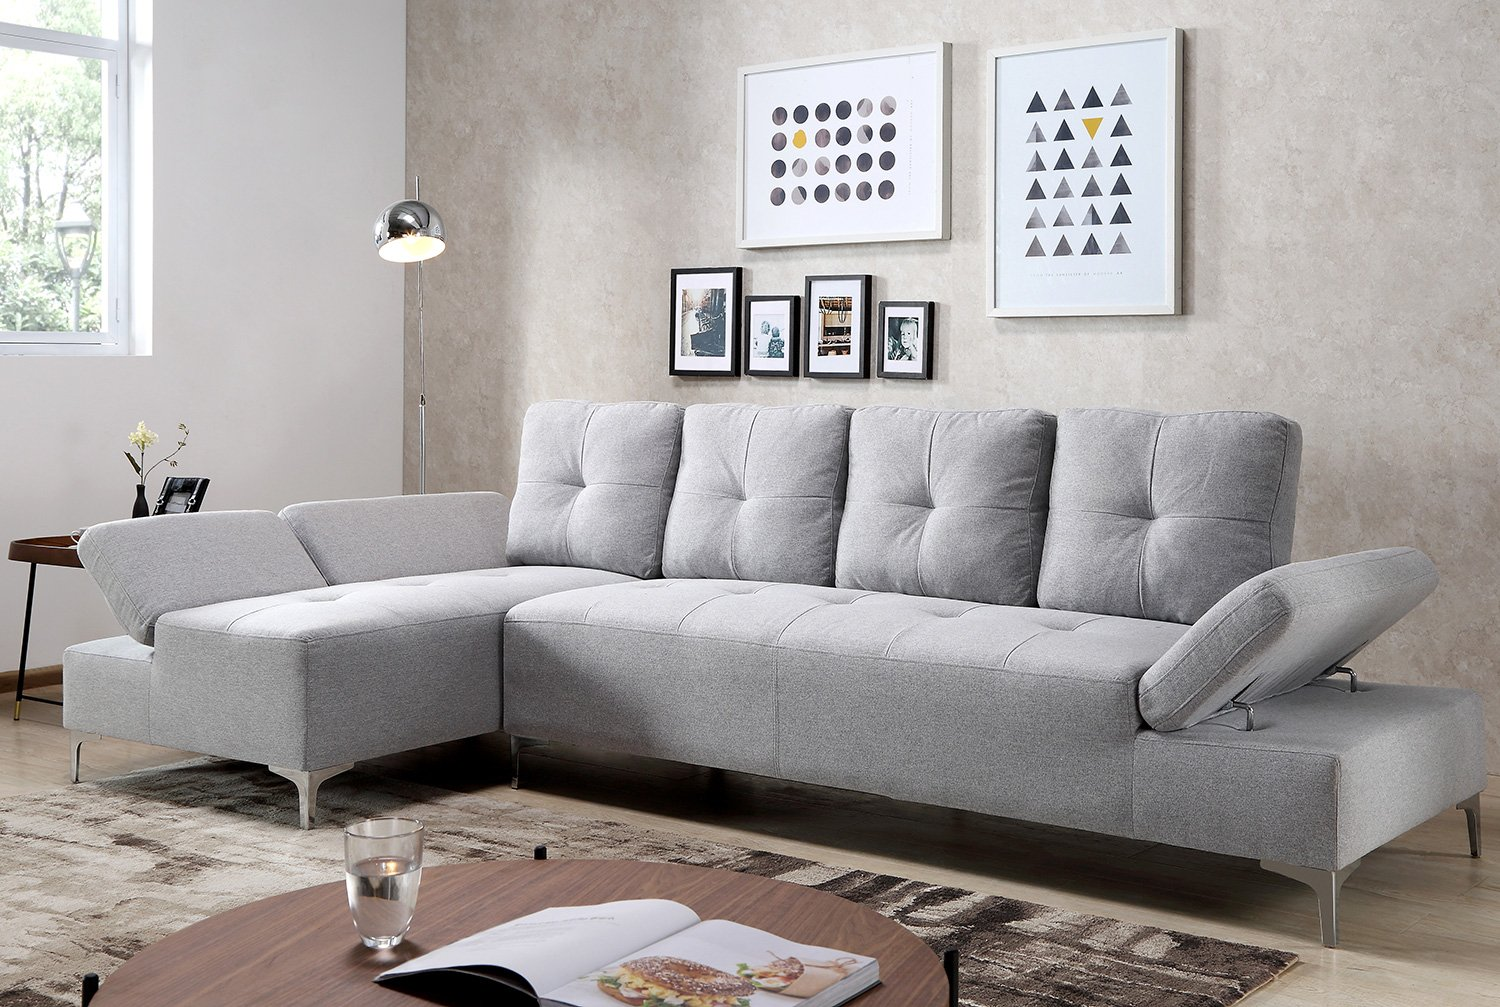 Amazon.com: Harper Bright Design Sectional Sofa Set Living ...